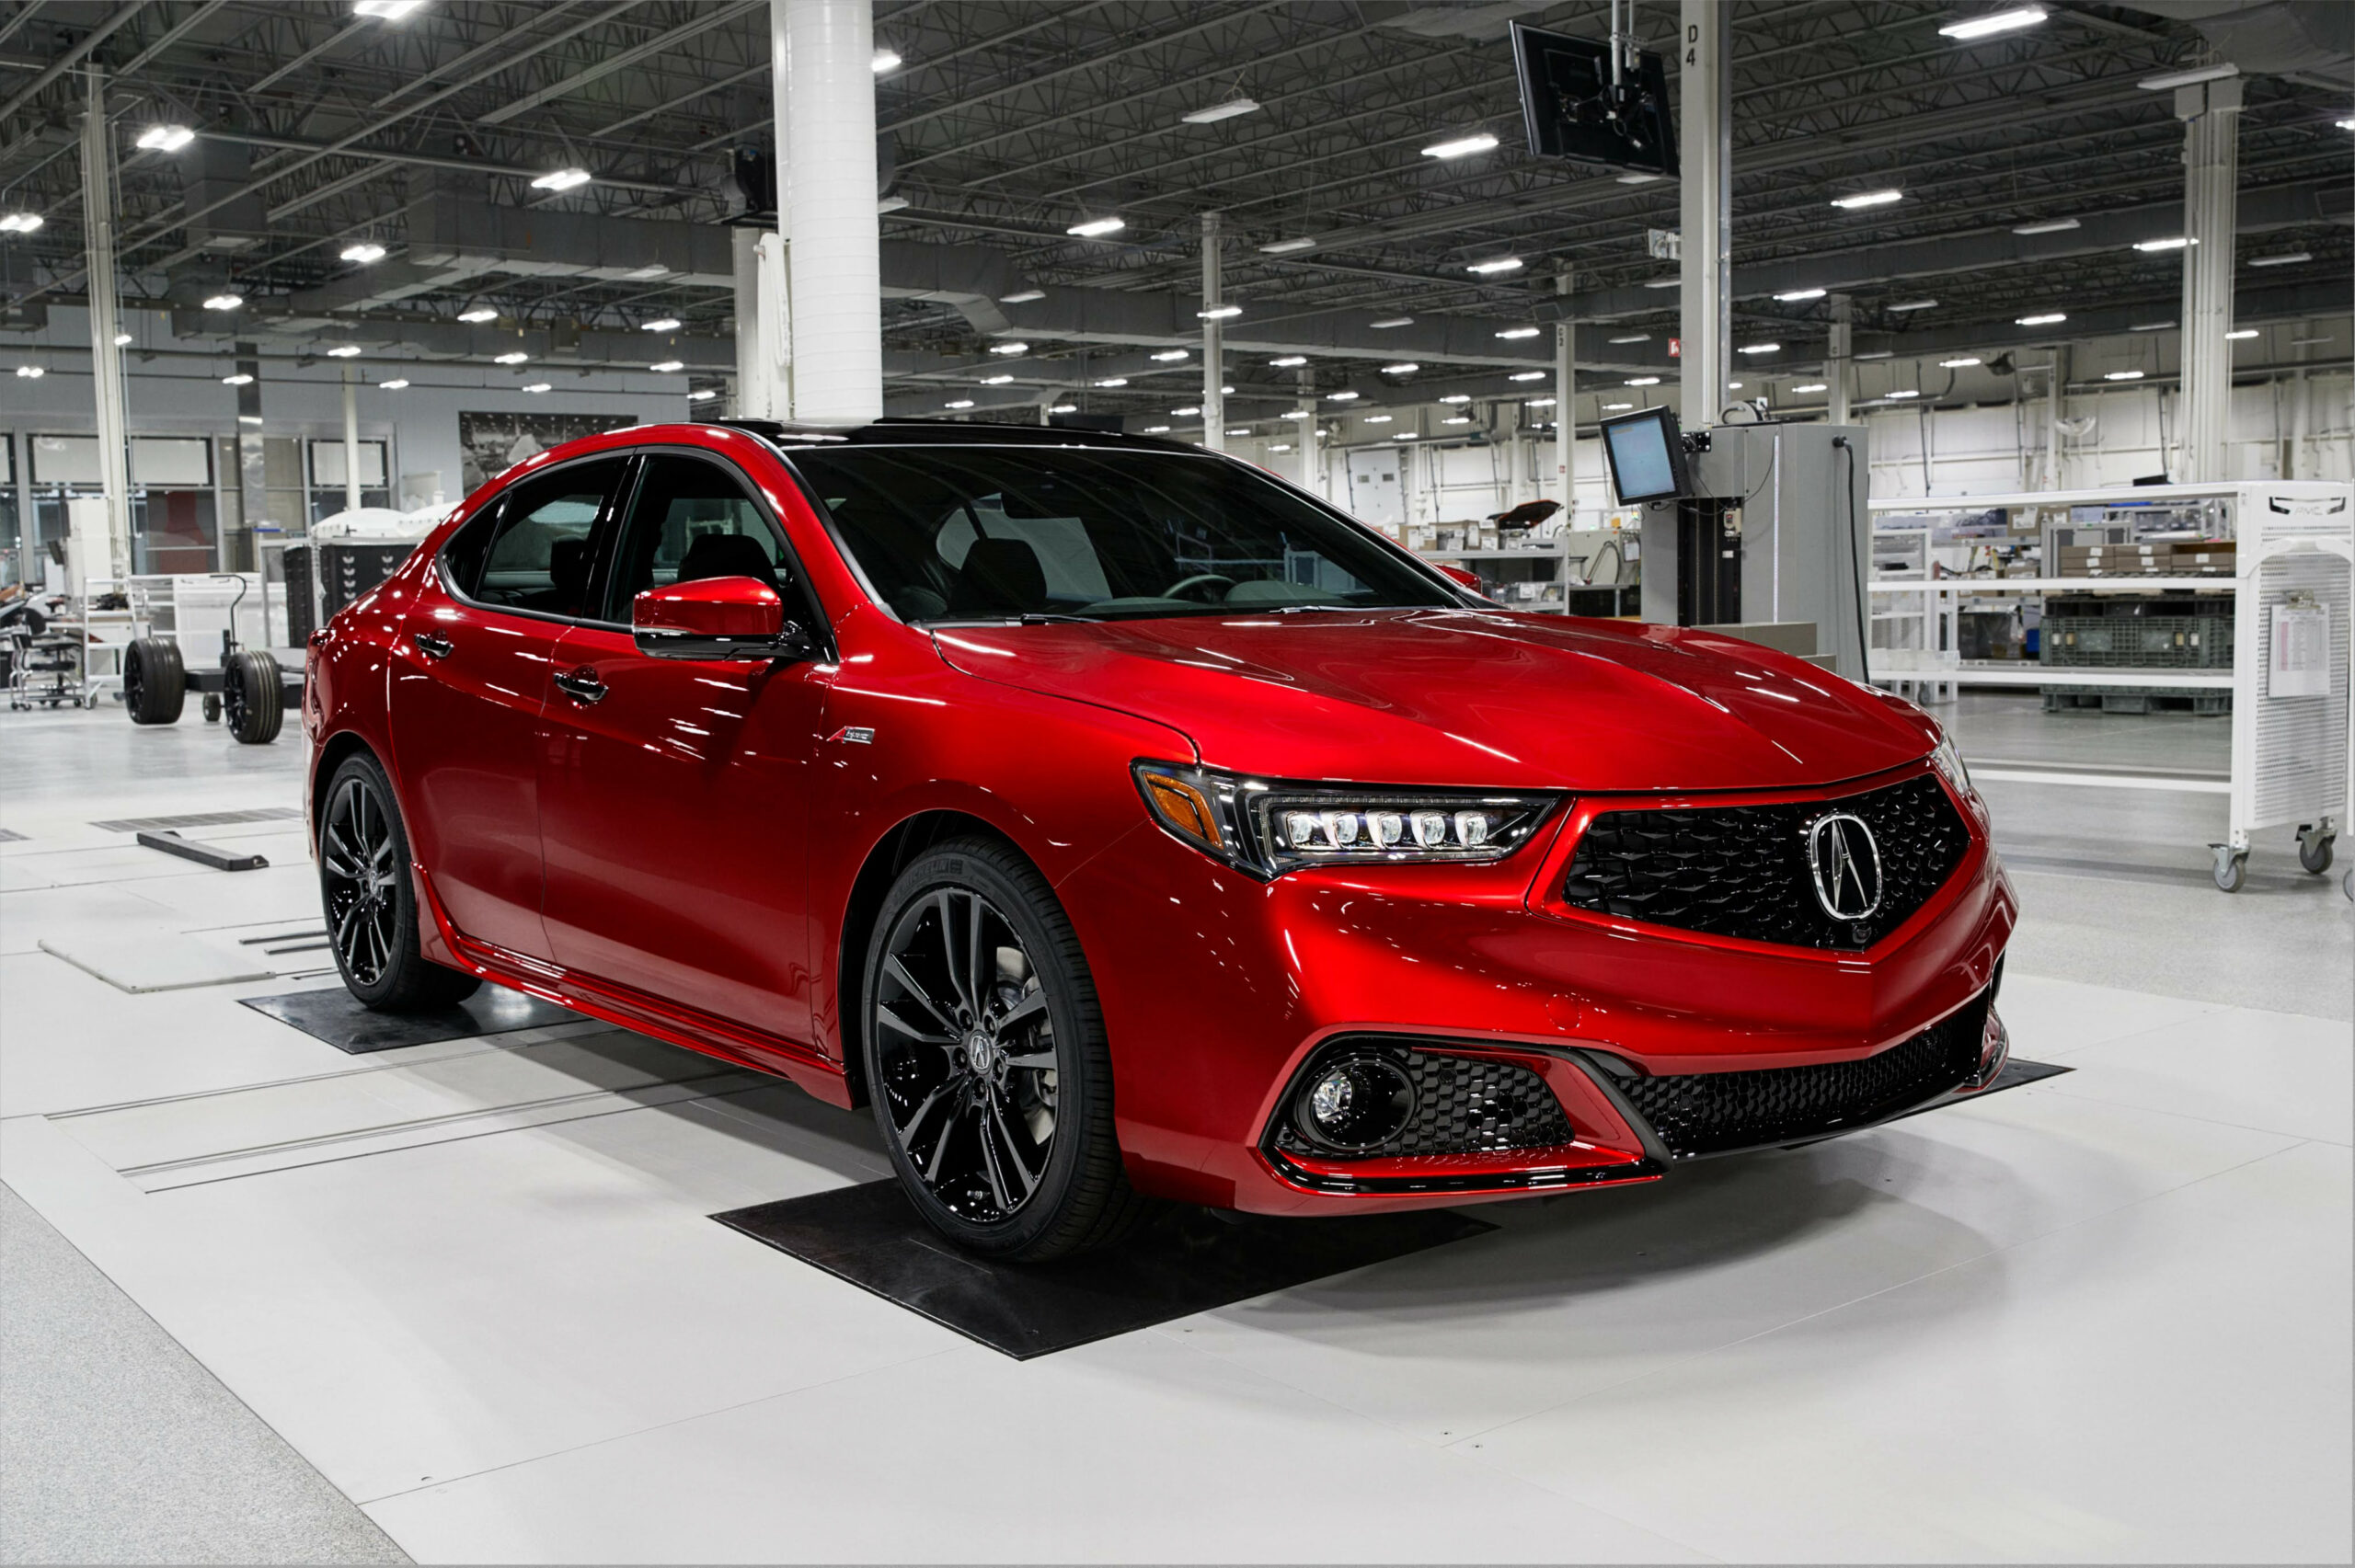 Acura Is Only Building 8 Examples of the 8 TLX PMC Edition ...